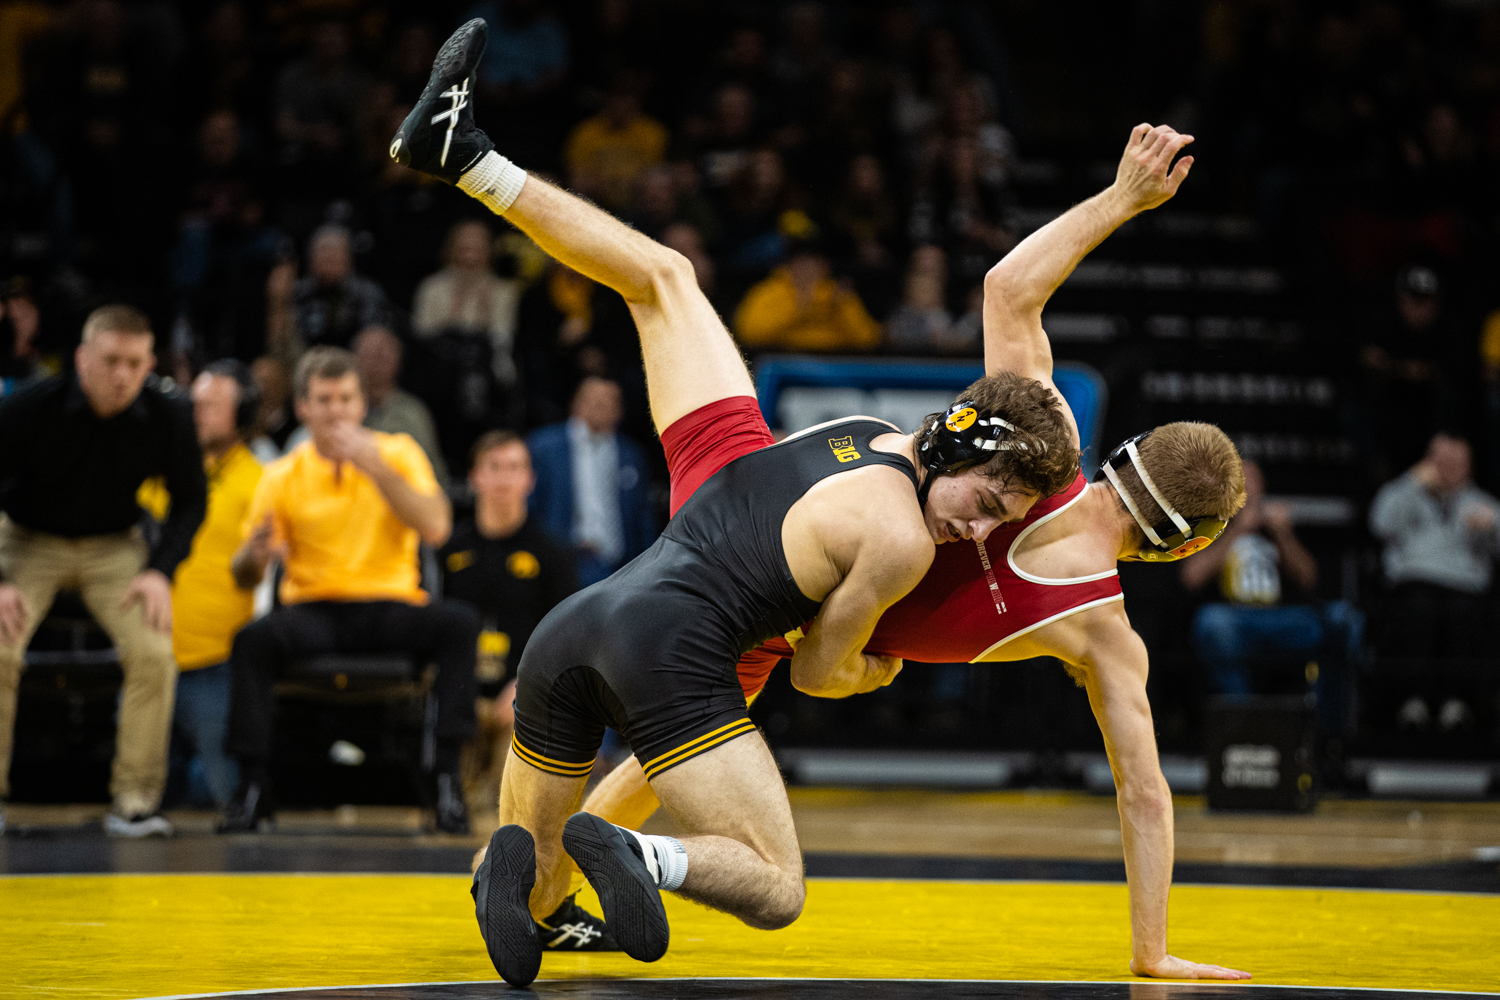 Iowa's 133-pound Austin DeSanto wrestles Wisconsin's Seth Gross during a wrestling match between No.1 Iowa and No. 6 Wisconsin at Carver-Hawkeye Arena on Sunday, Dec. 1, 2019. DeSanto won by decision, 6-2, and the Hawkeyes defeated the Badgers, 32-3.